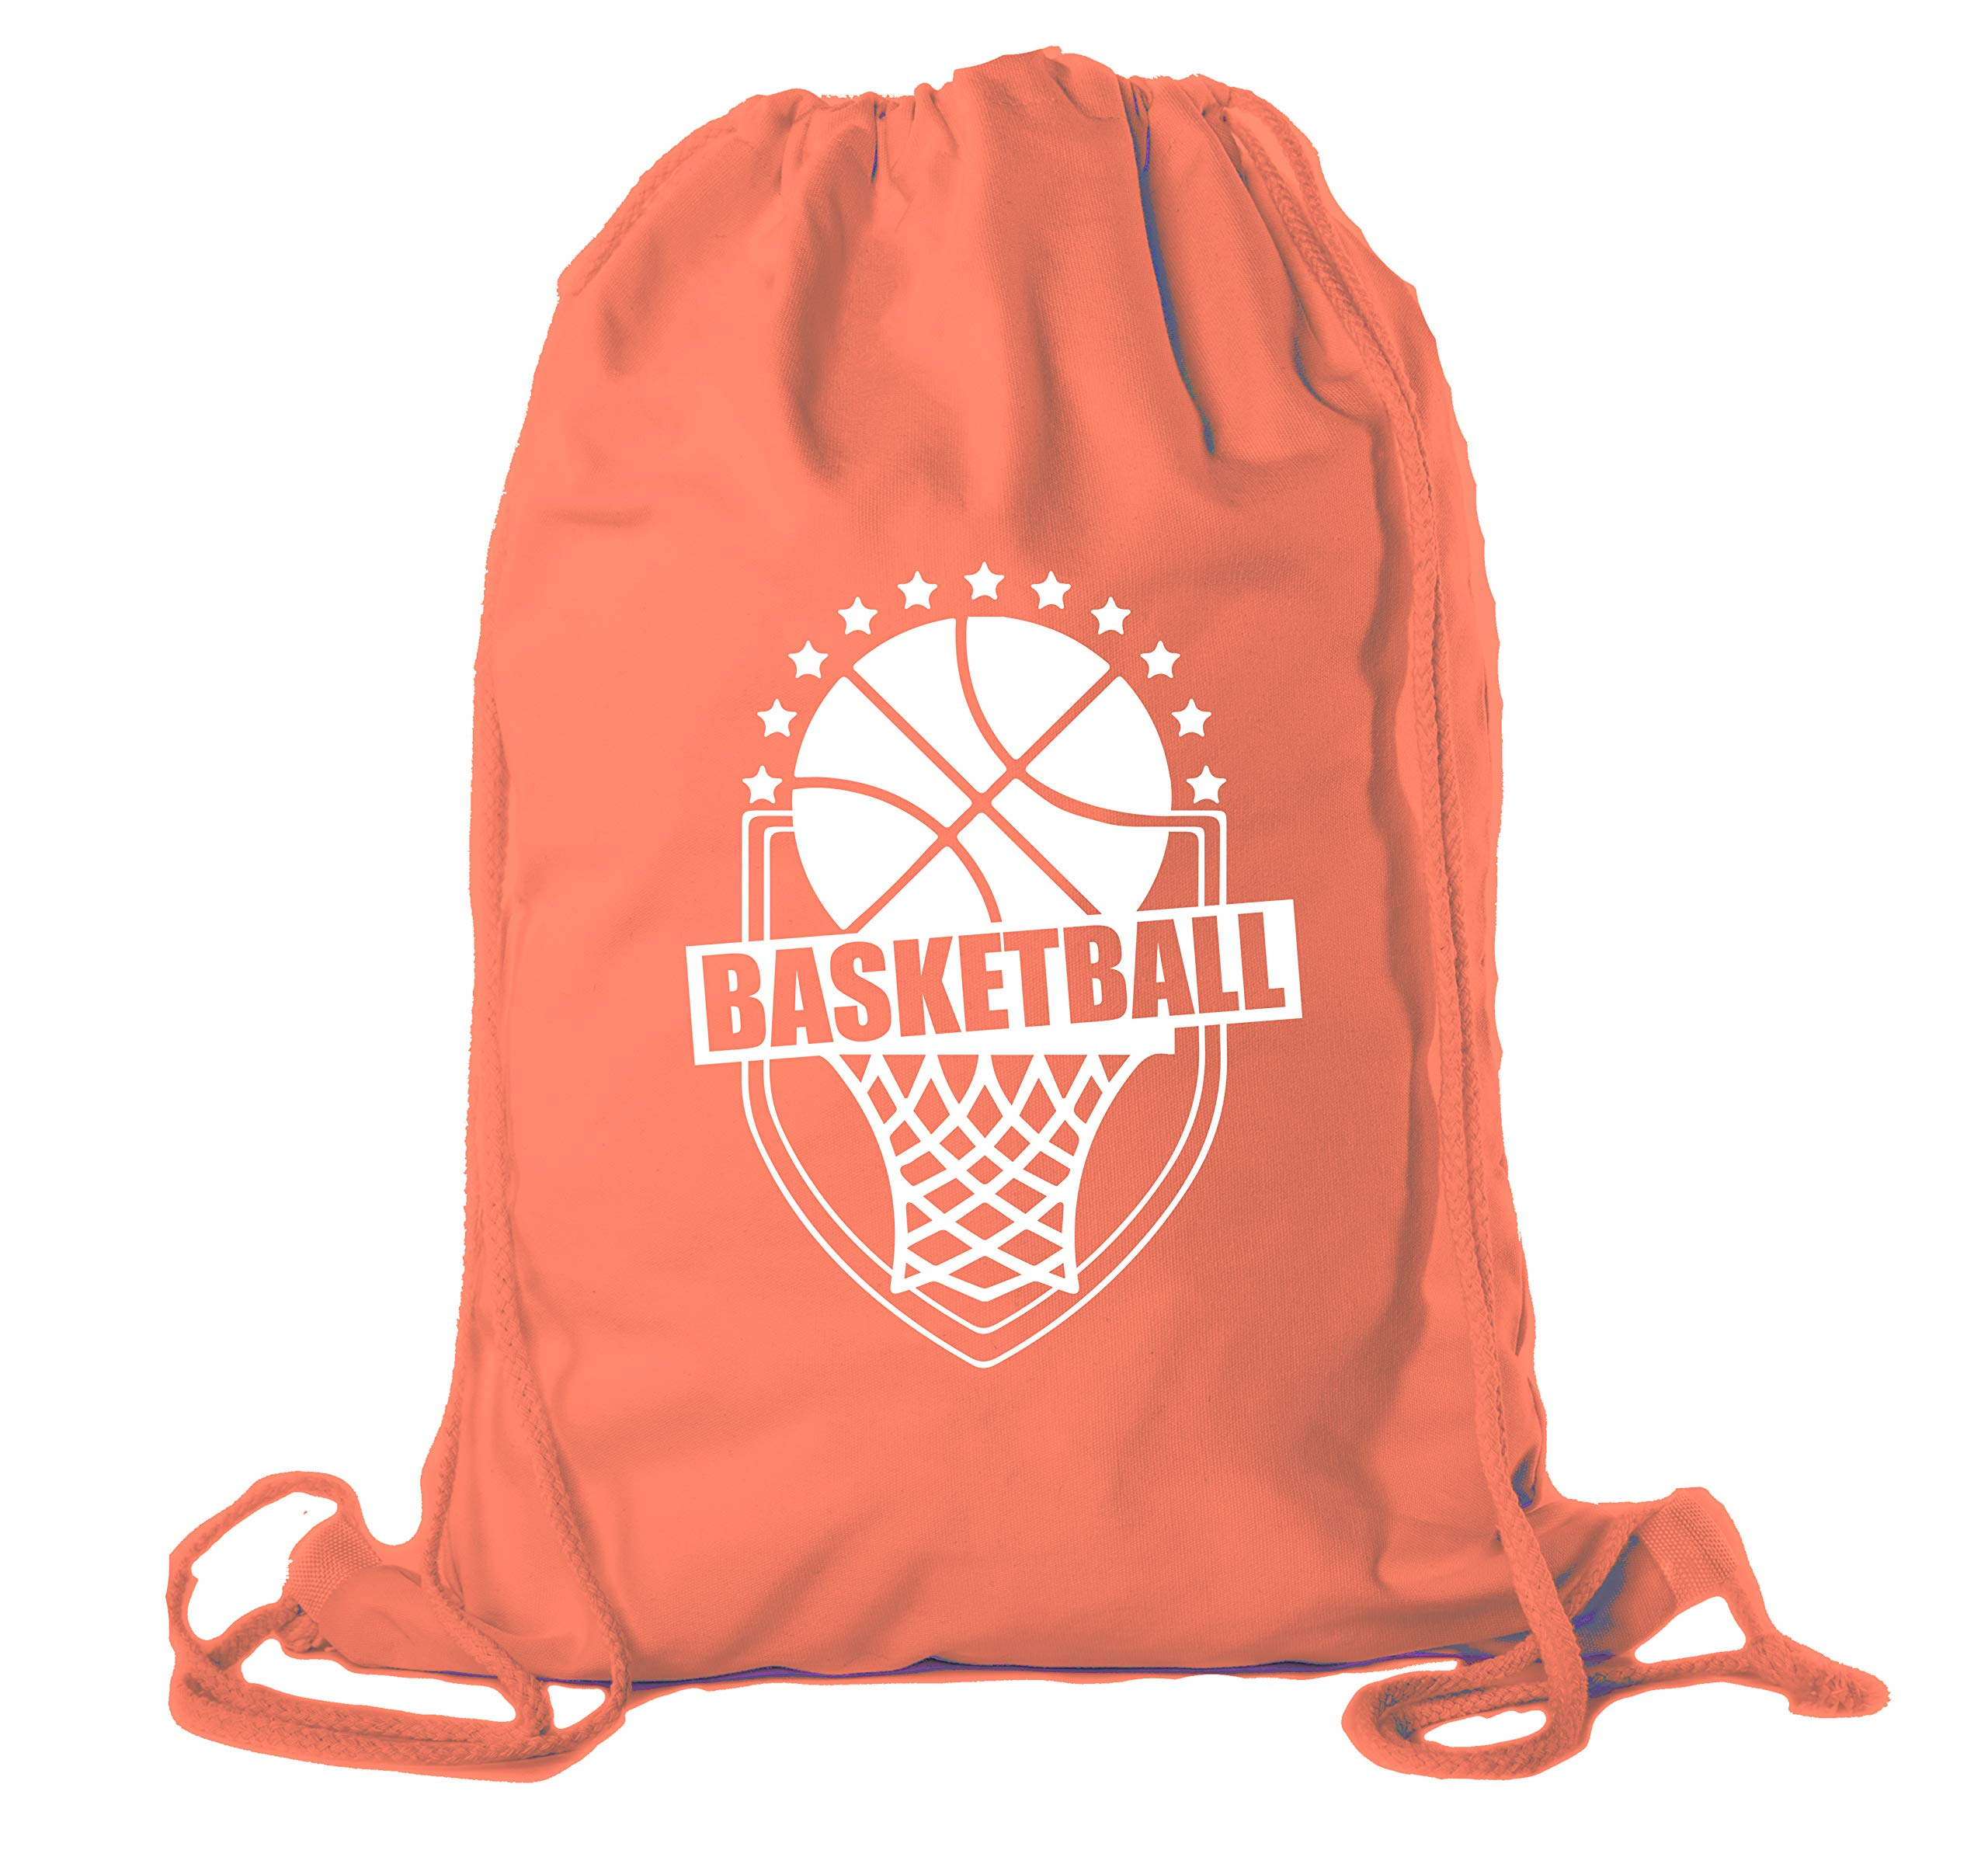 Basketball Party Bags | Basketball Cotton Drawstring Cinch Backpacks for Team events, Birthdays, and more! - 10PK Orange CA2725Basketball S2